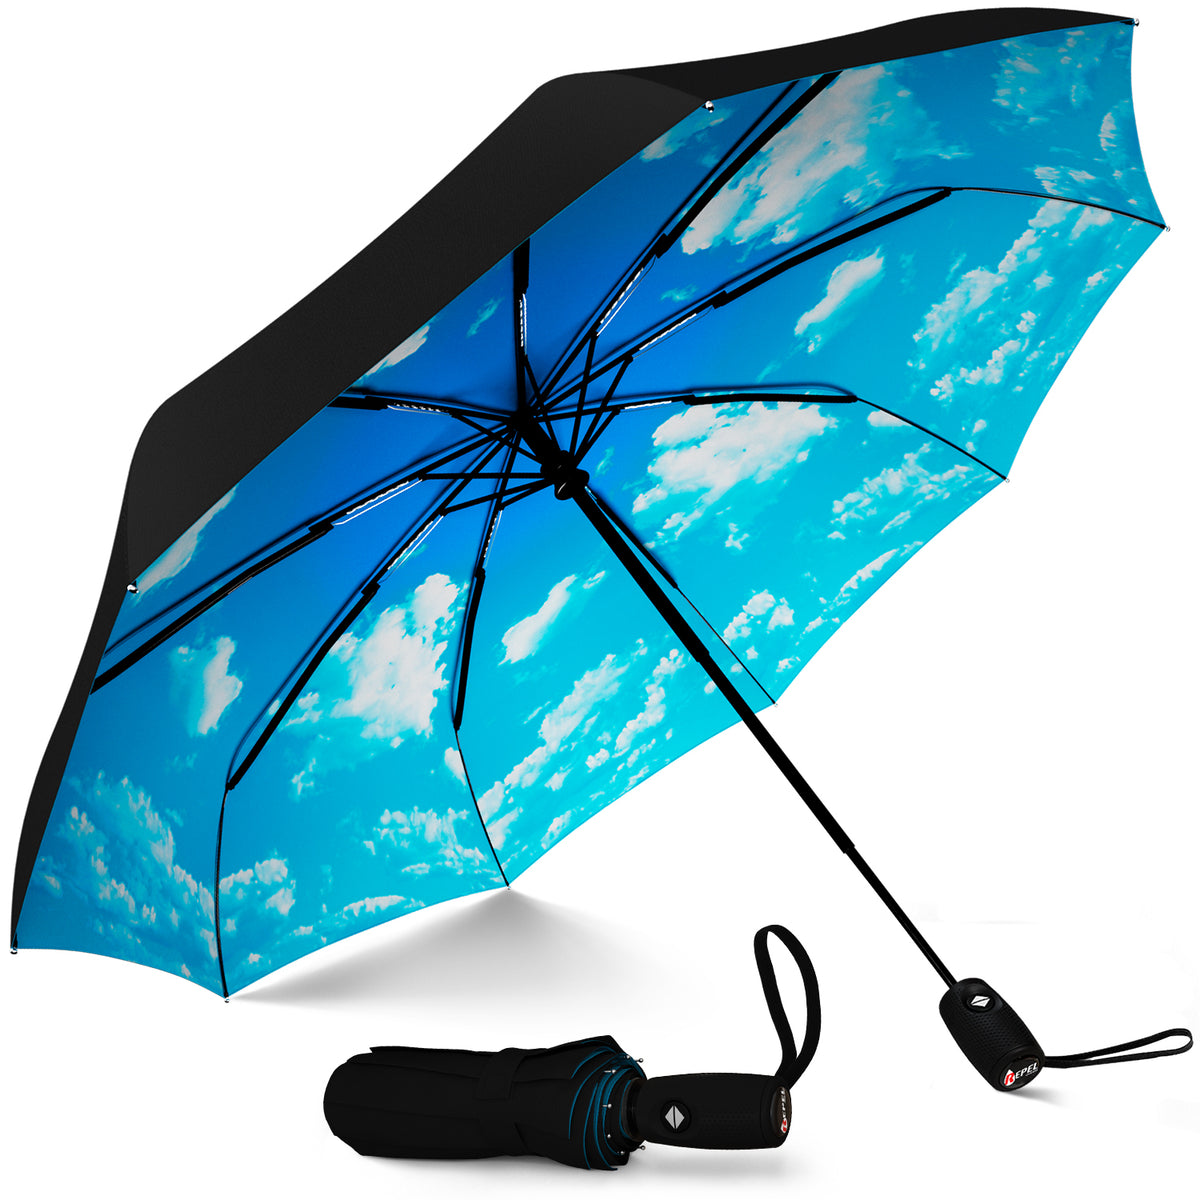 Windproof Travel Umbrella - Compact, Automatic, Blue Sky